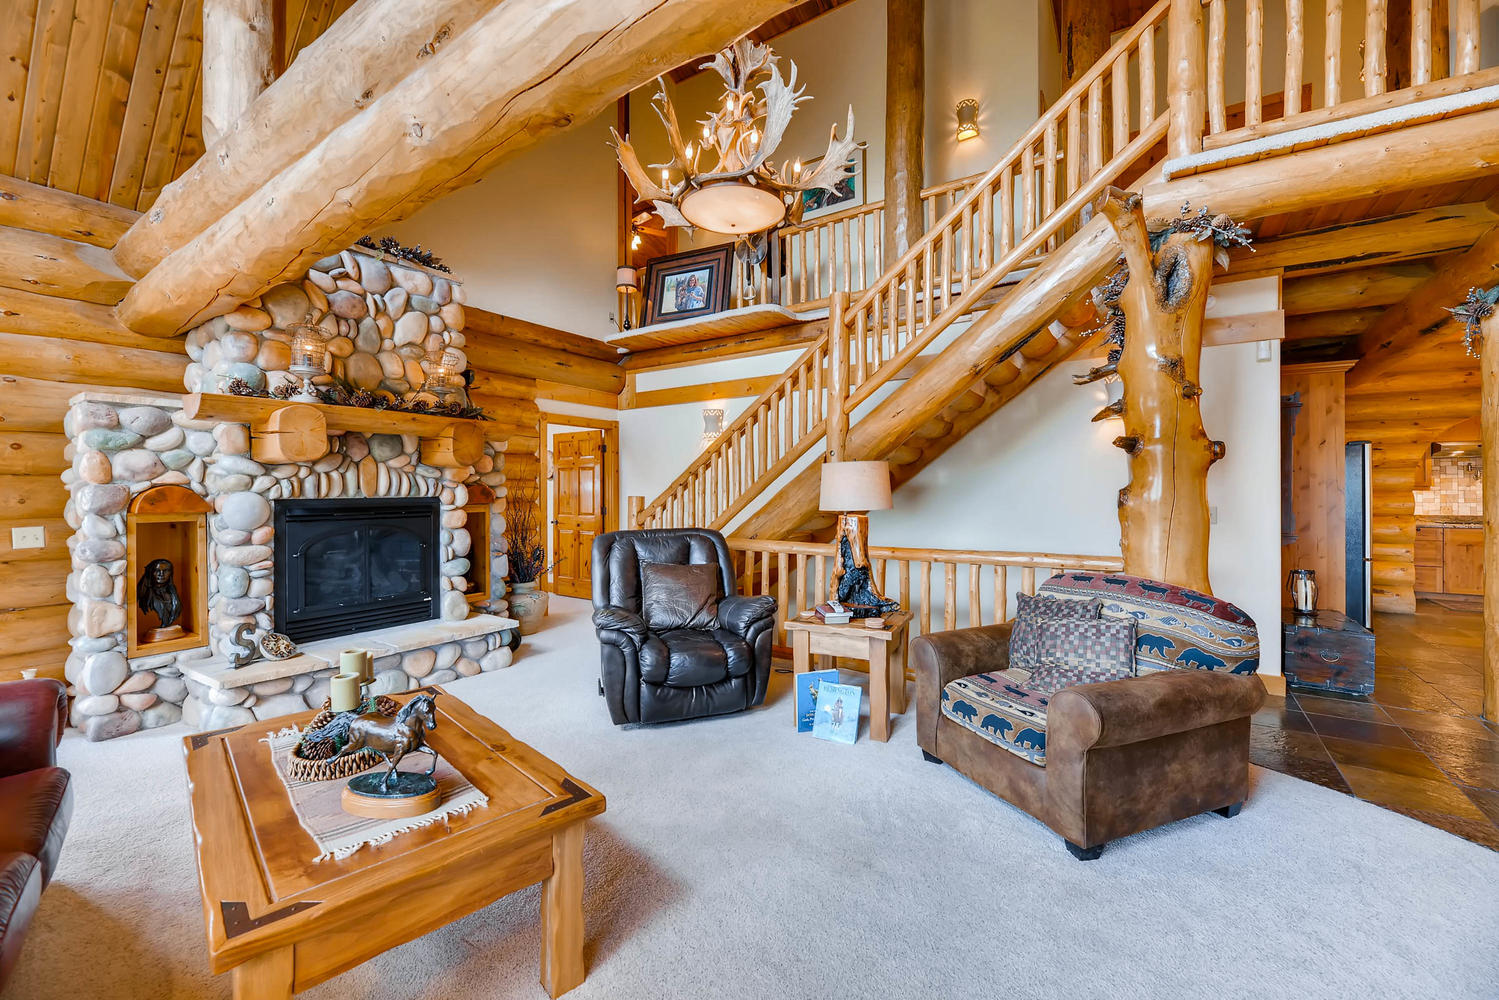 Cozy up next to the gas fireplace.